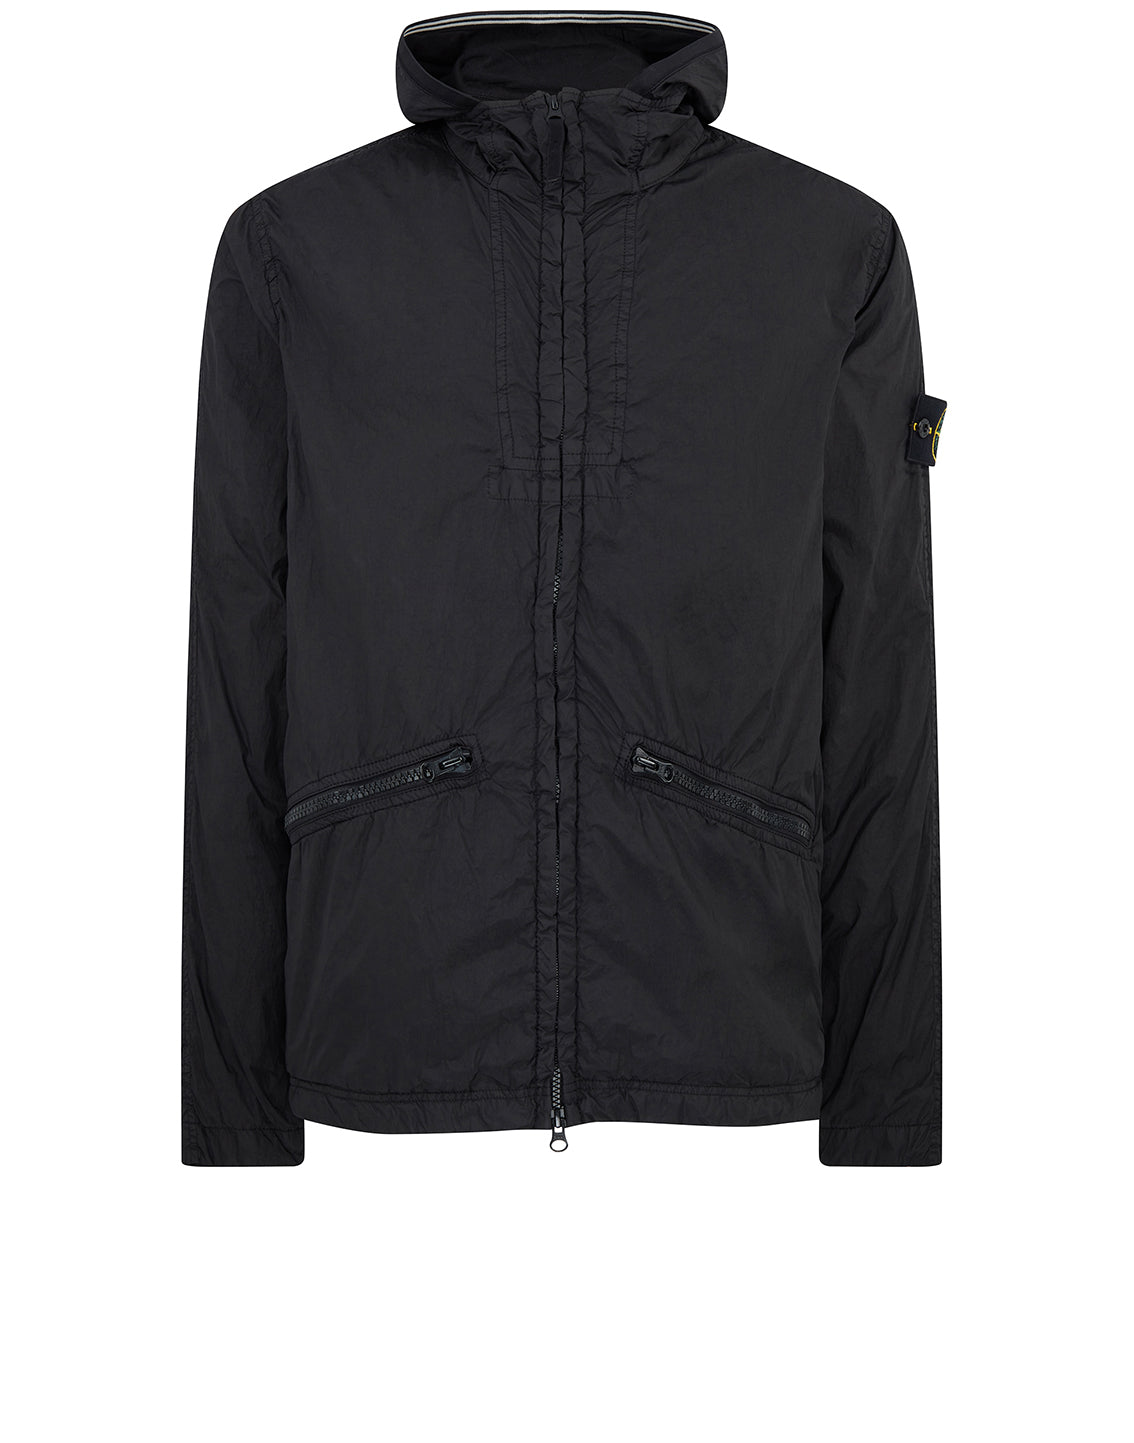 41030 GARMENT DYED CRINKLE REPS NY Jacket in Black